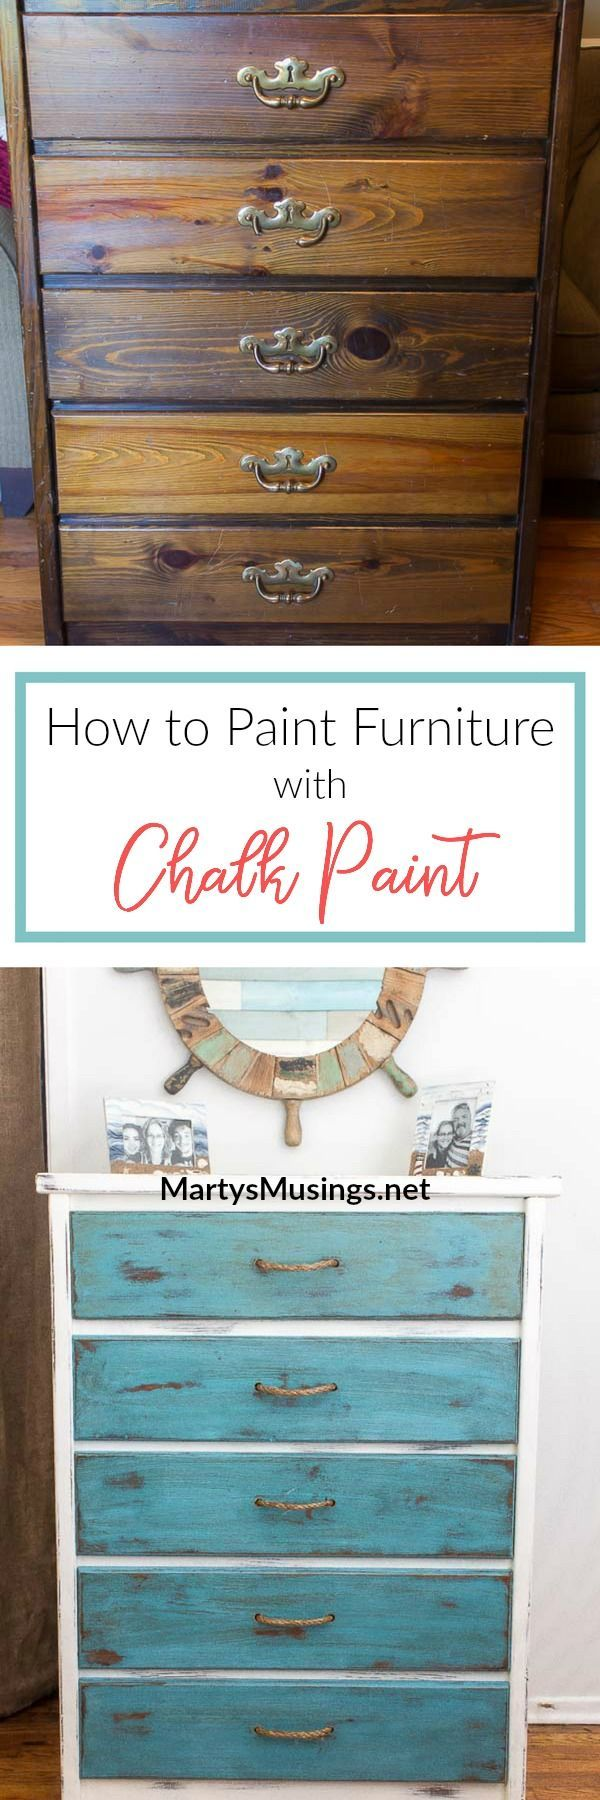 1000 images about painted furniture ideas diy on for Where to throw away furniture